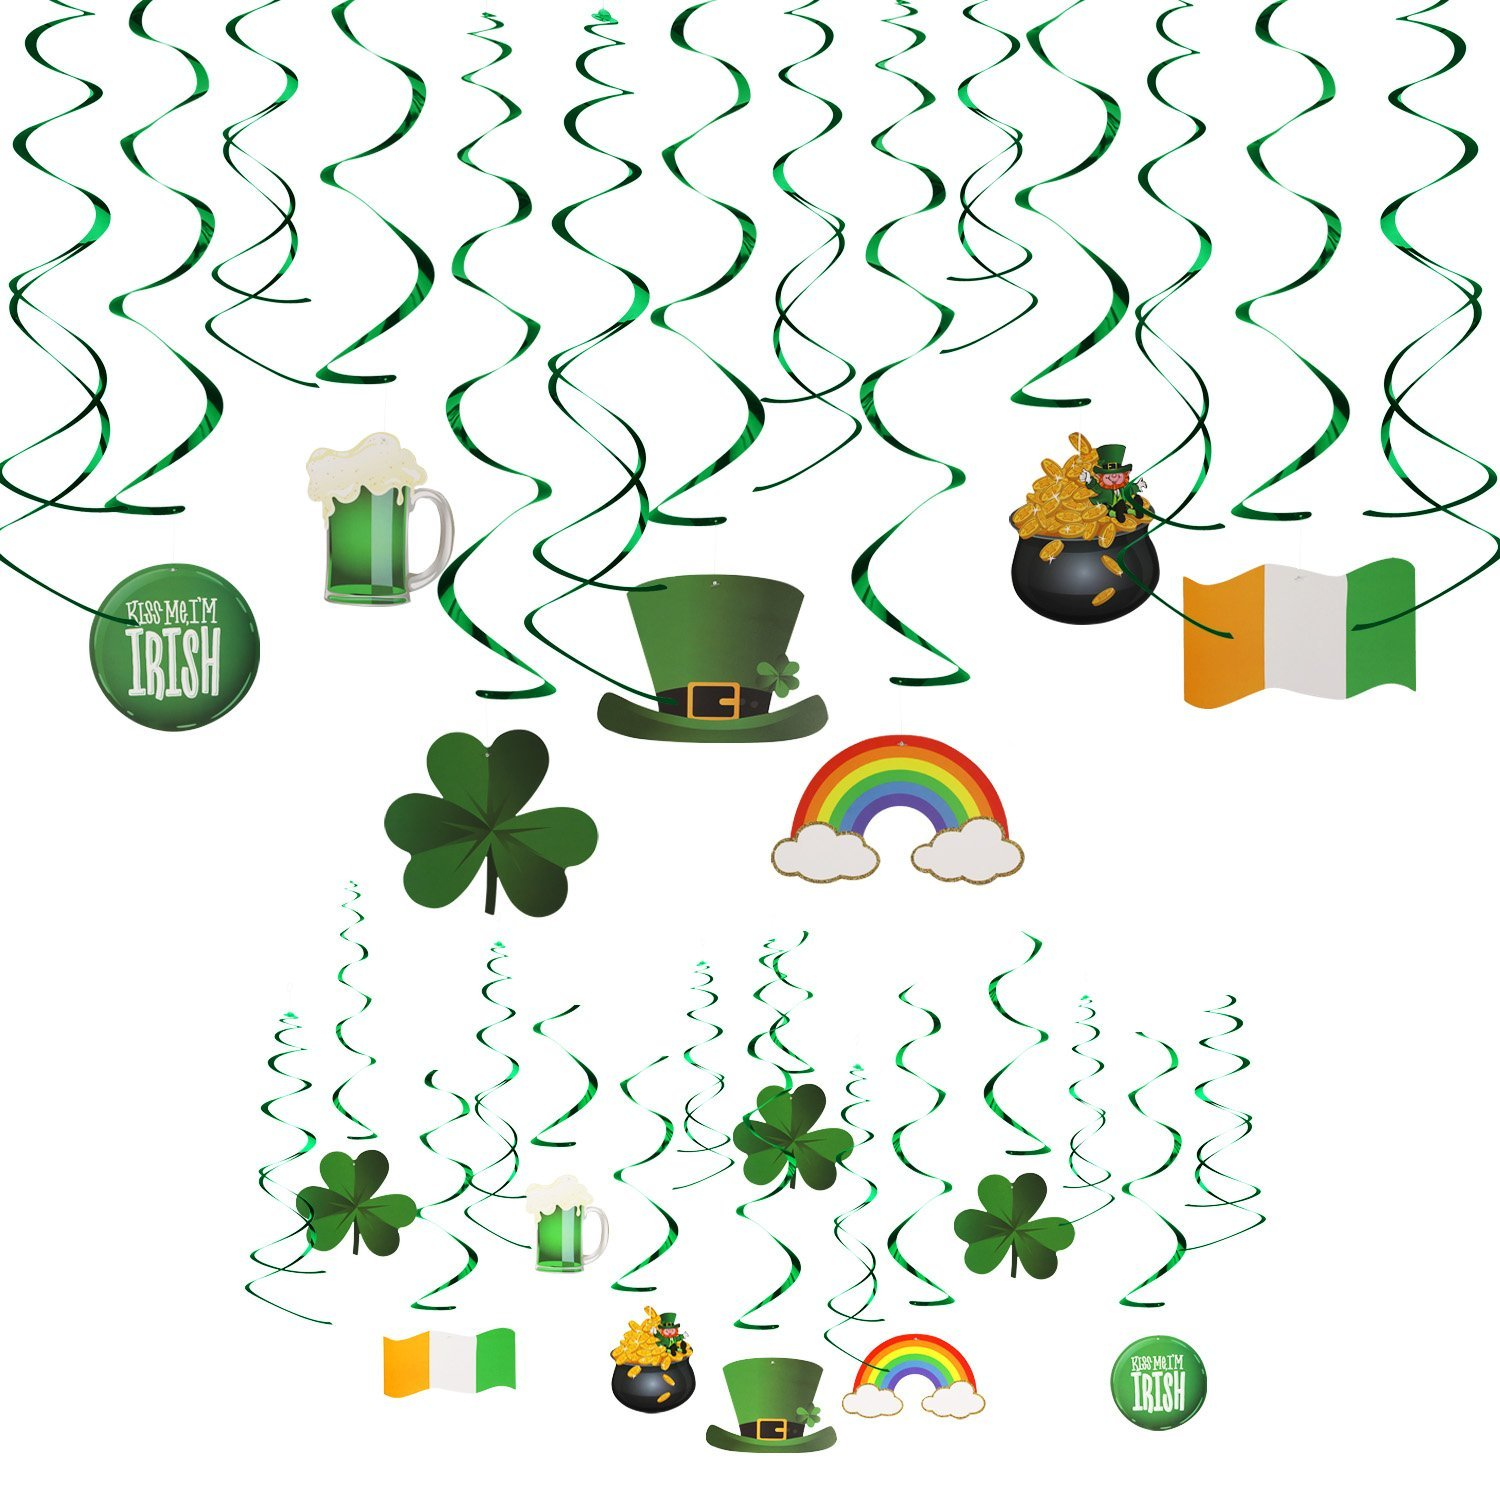 VIPITH Lucky Clover Irish Green St. Patrick's Day Foil String Hanging Swirl Decoration with Hats Beers Clover Leprechaun Rainbow for Home Office and Party, Set of 30 Pieces